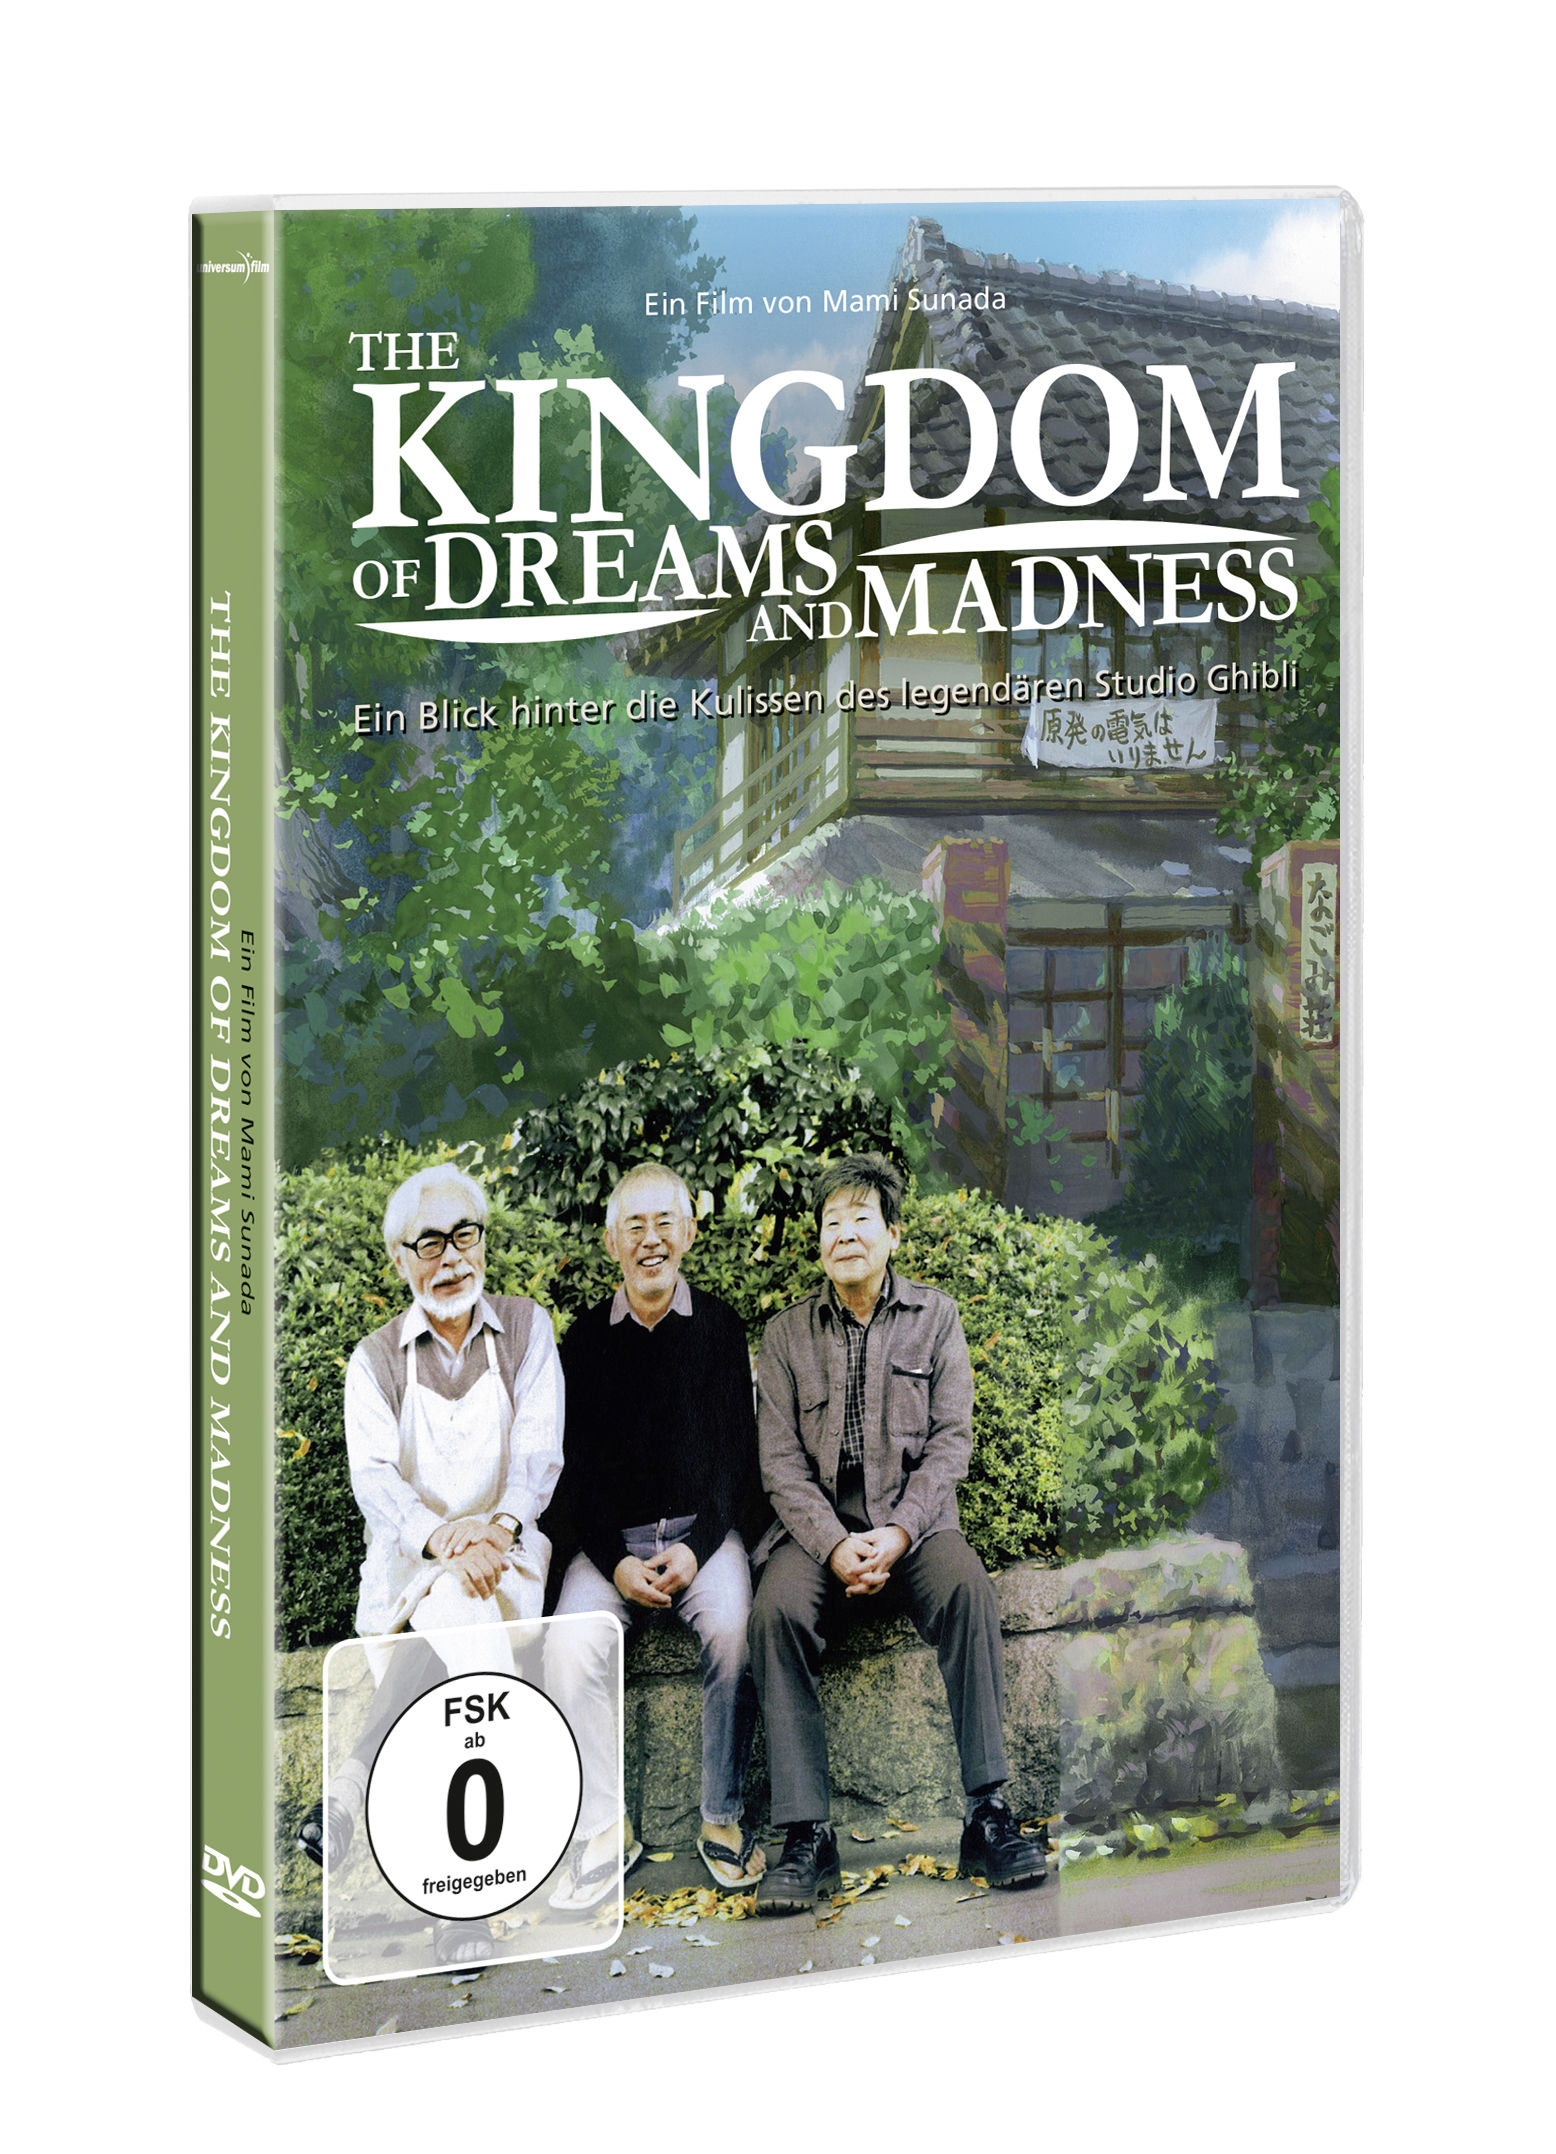 The Kingdom of Dreams and Madness DVD